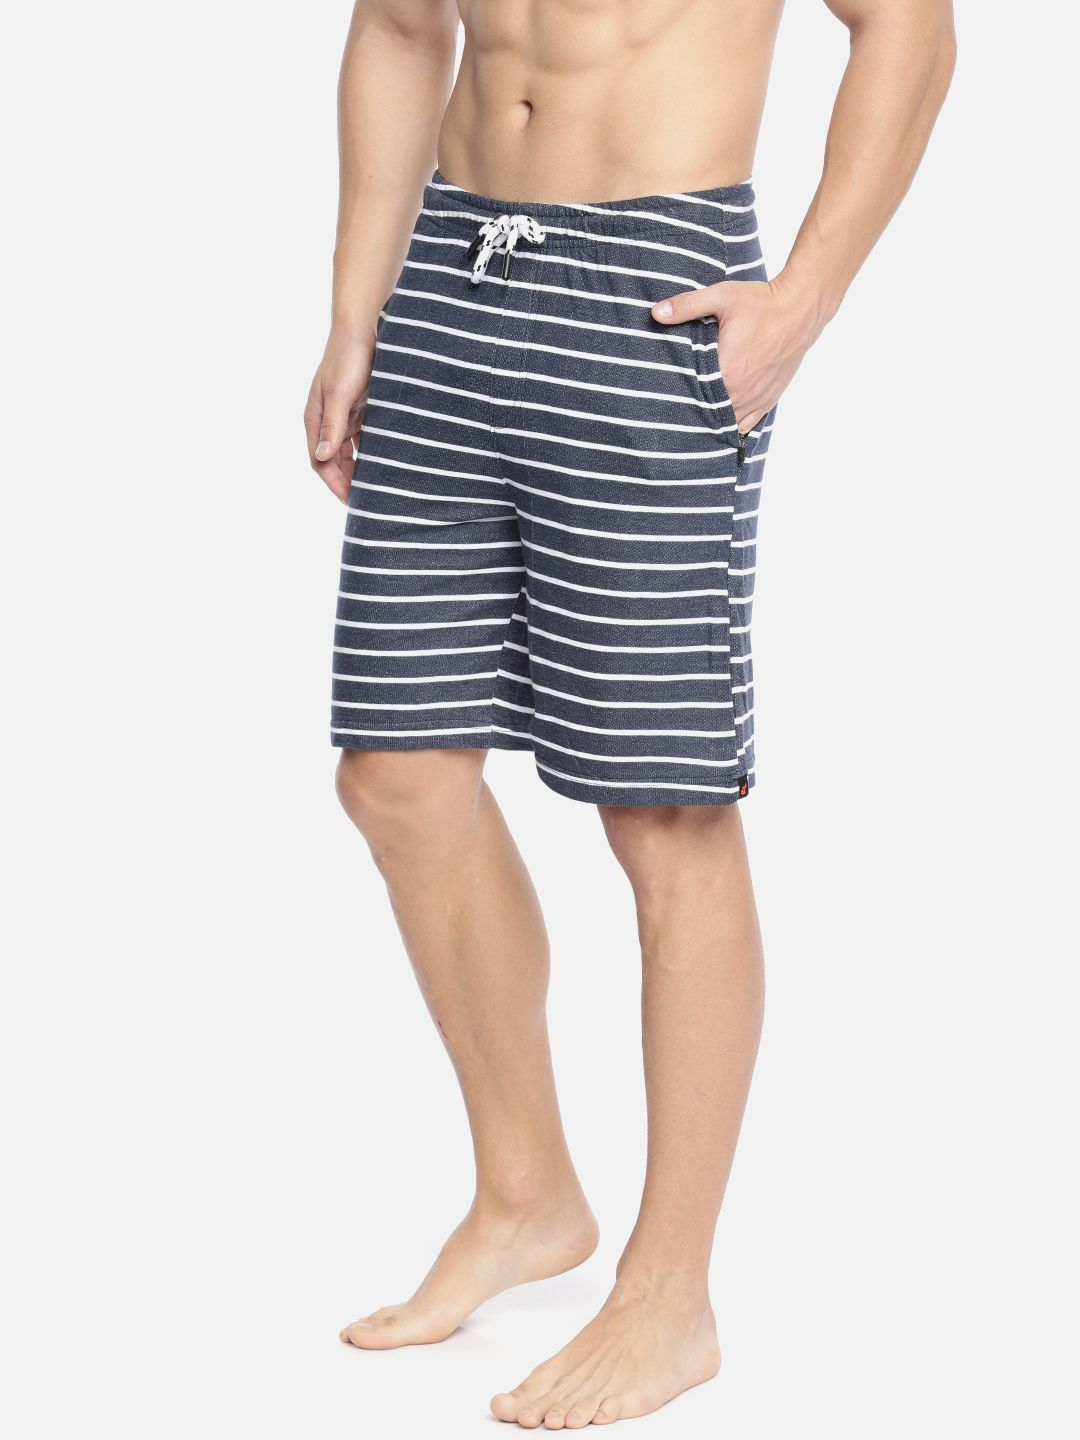 The Stripey Smooth Everywear Shorts